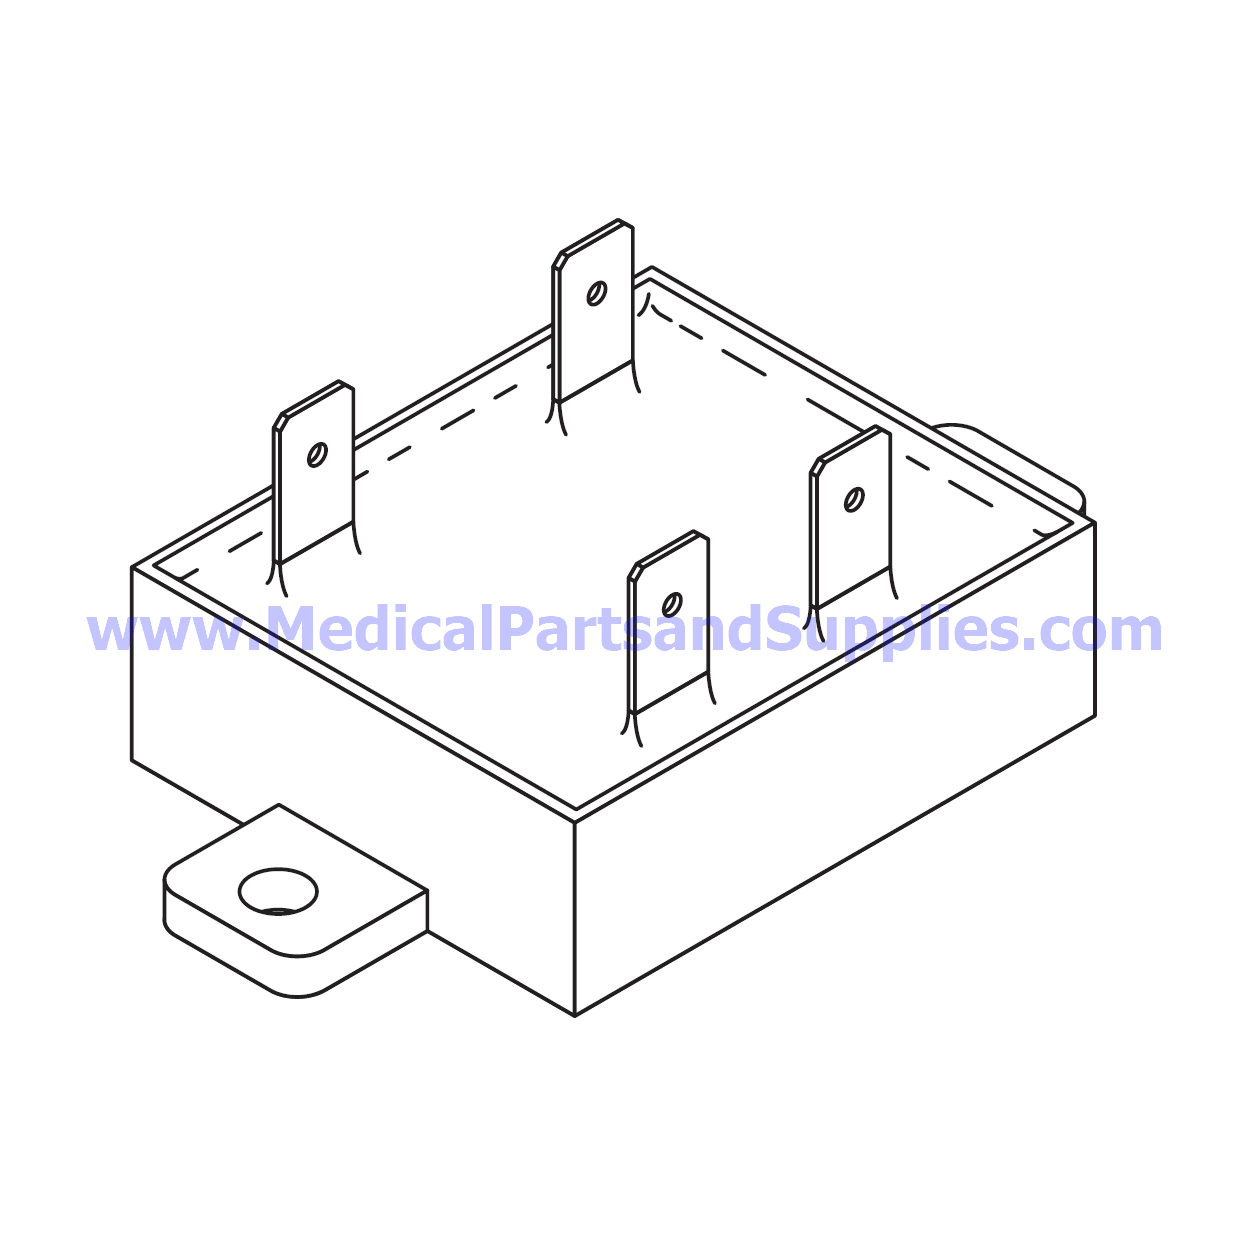 Solid State Relay (Pump) for the Tuttnauer® EZ10, Part